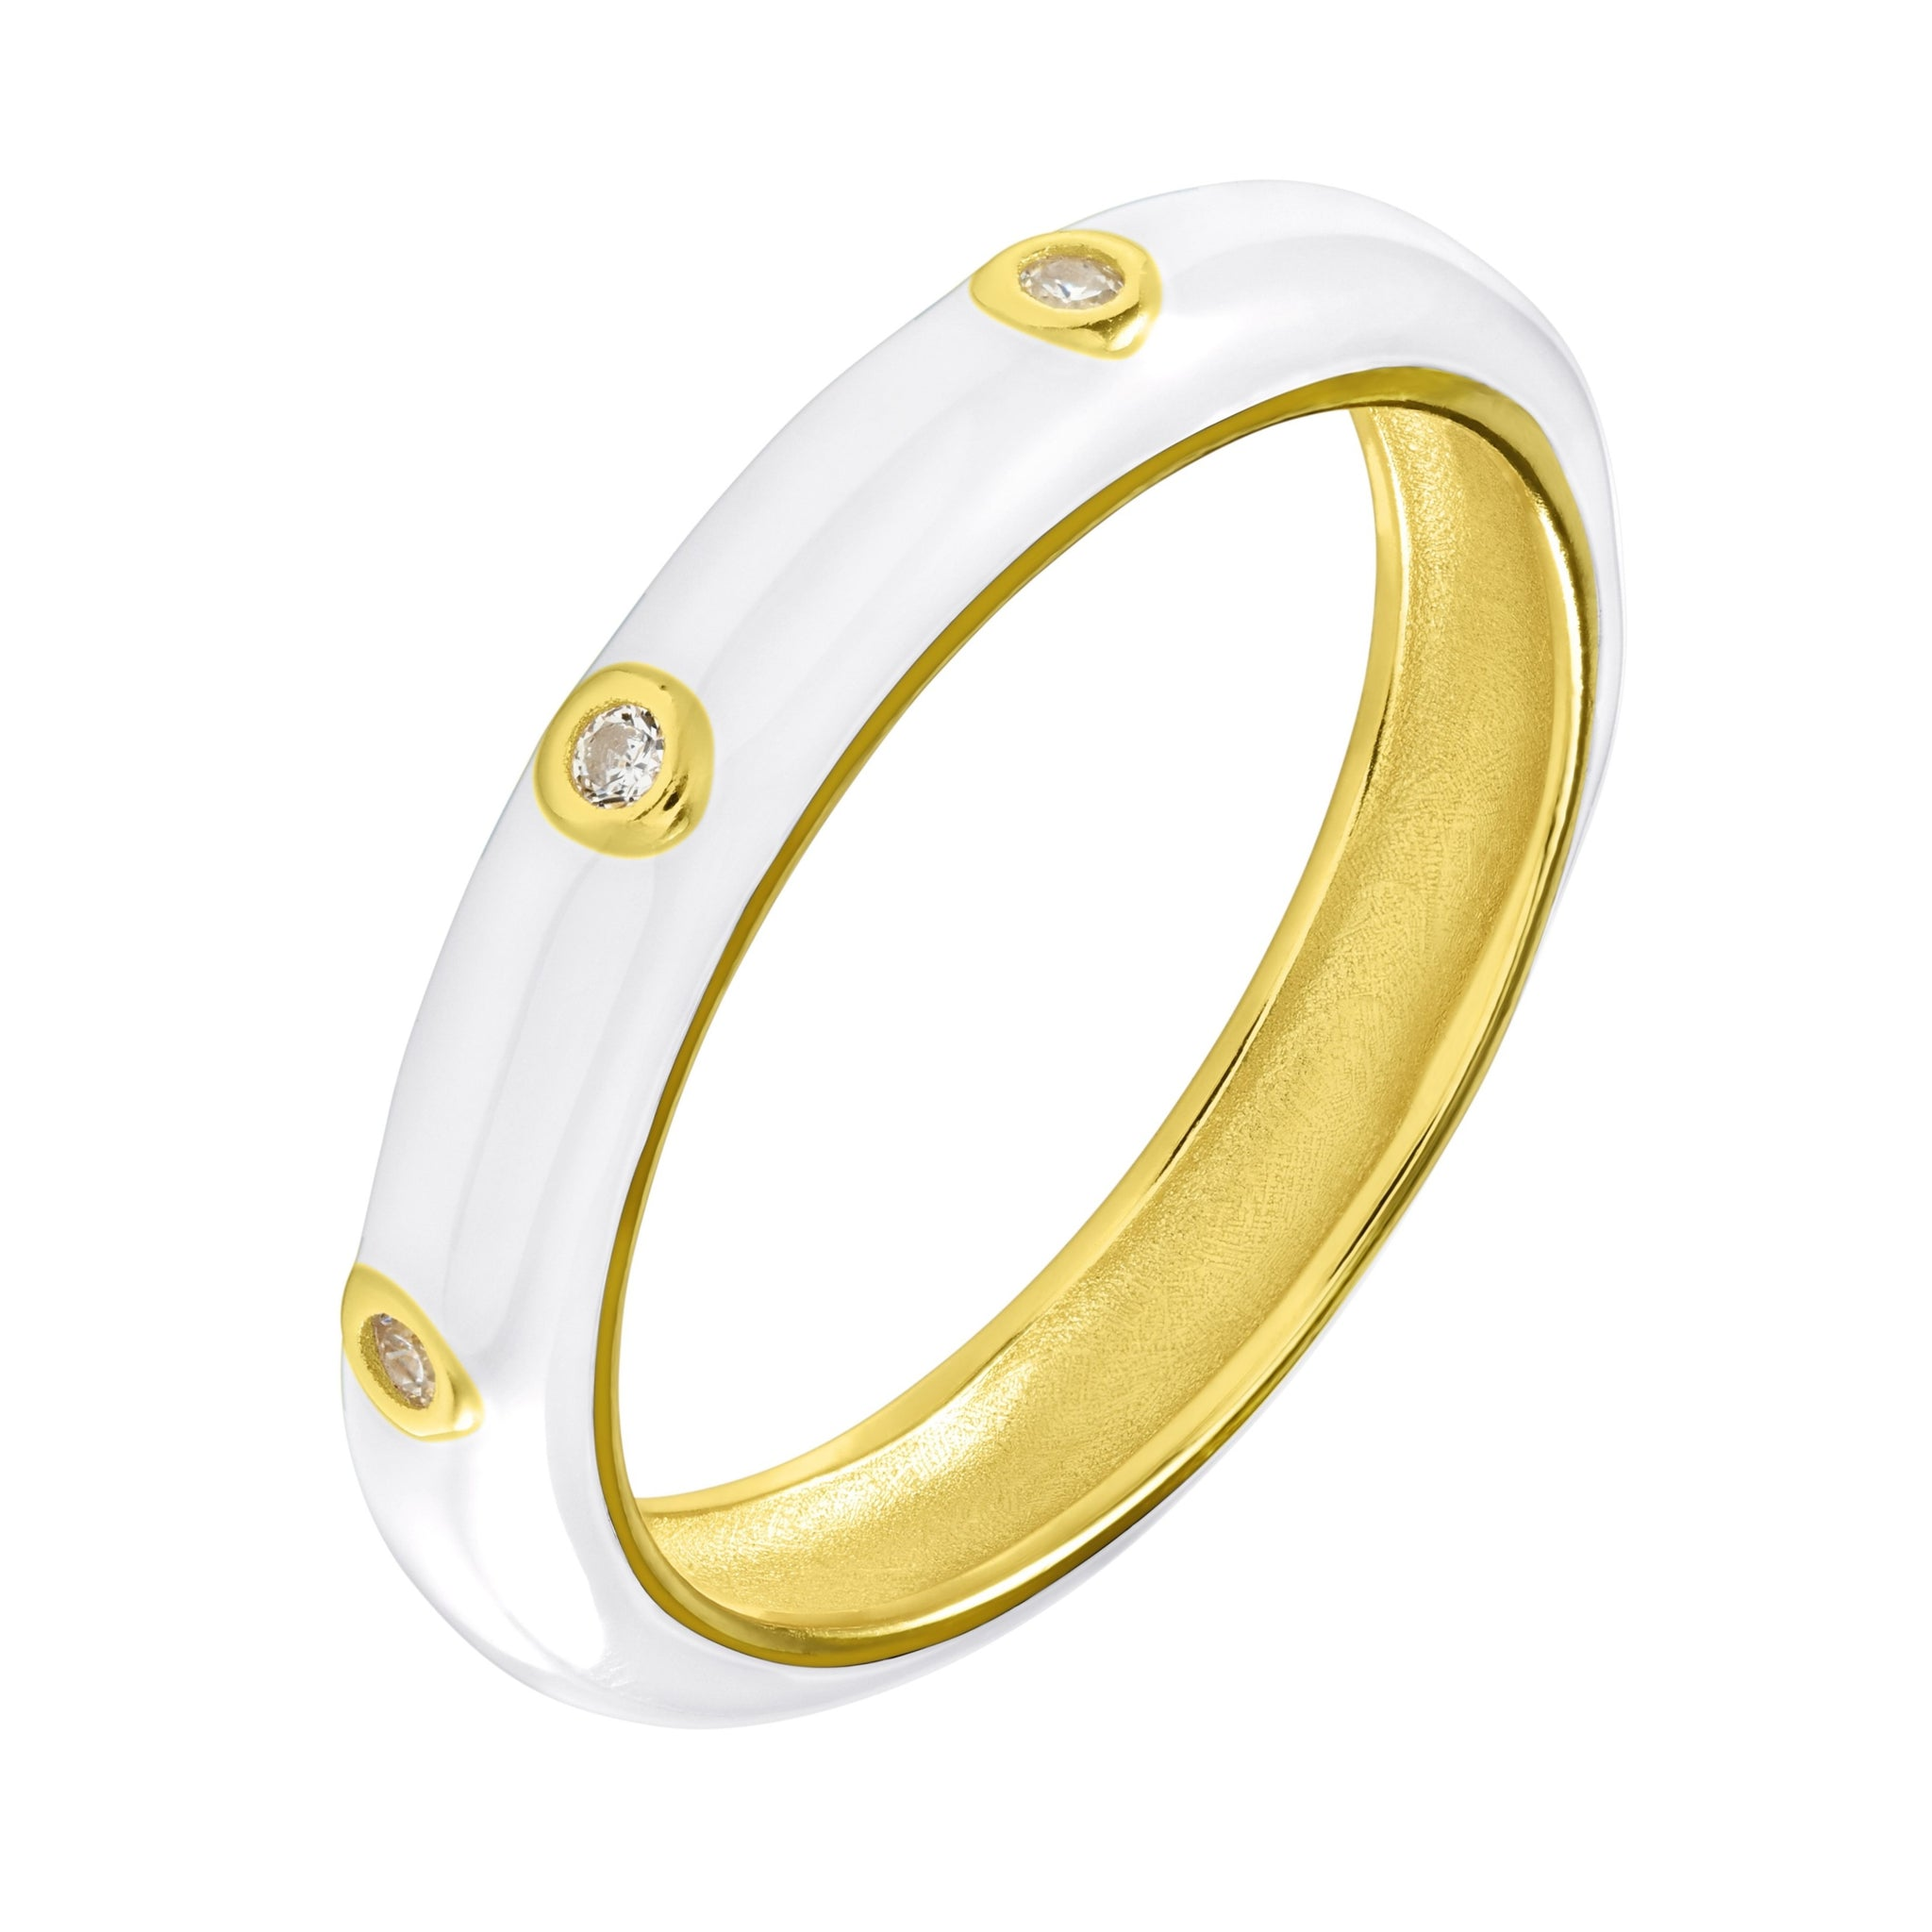 White Enamel Band - Yellow Gold - Voare Jewelry